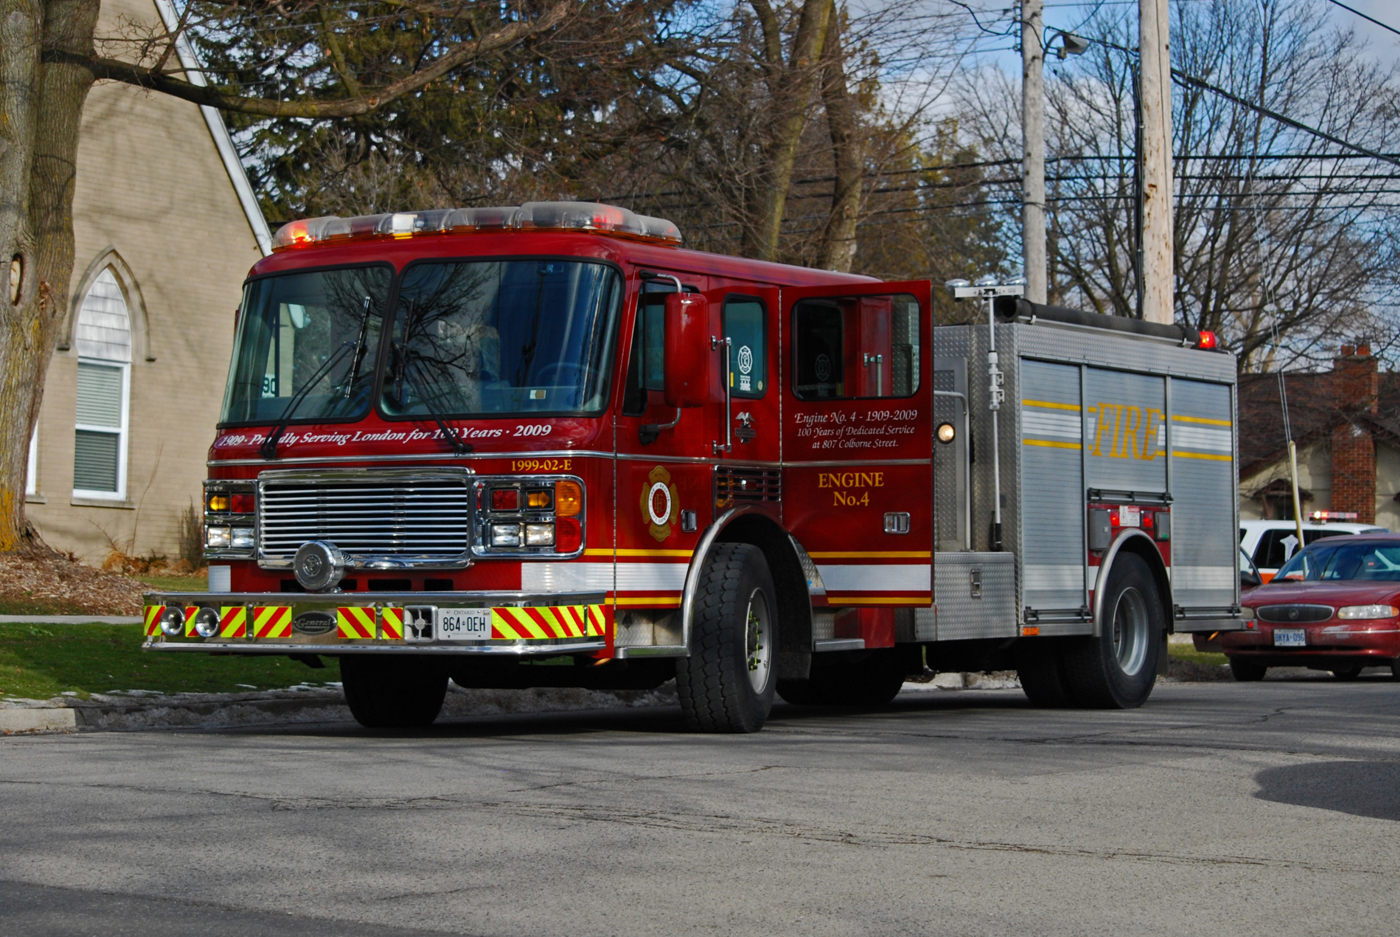 Engine 4 parked on scene at an MVC